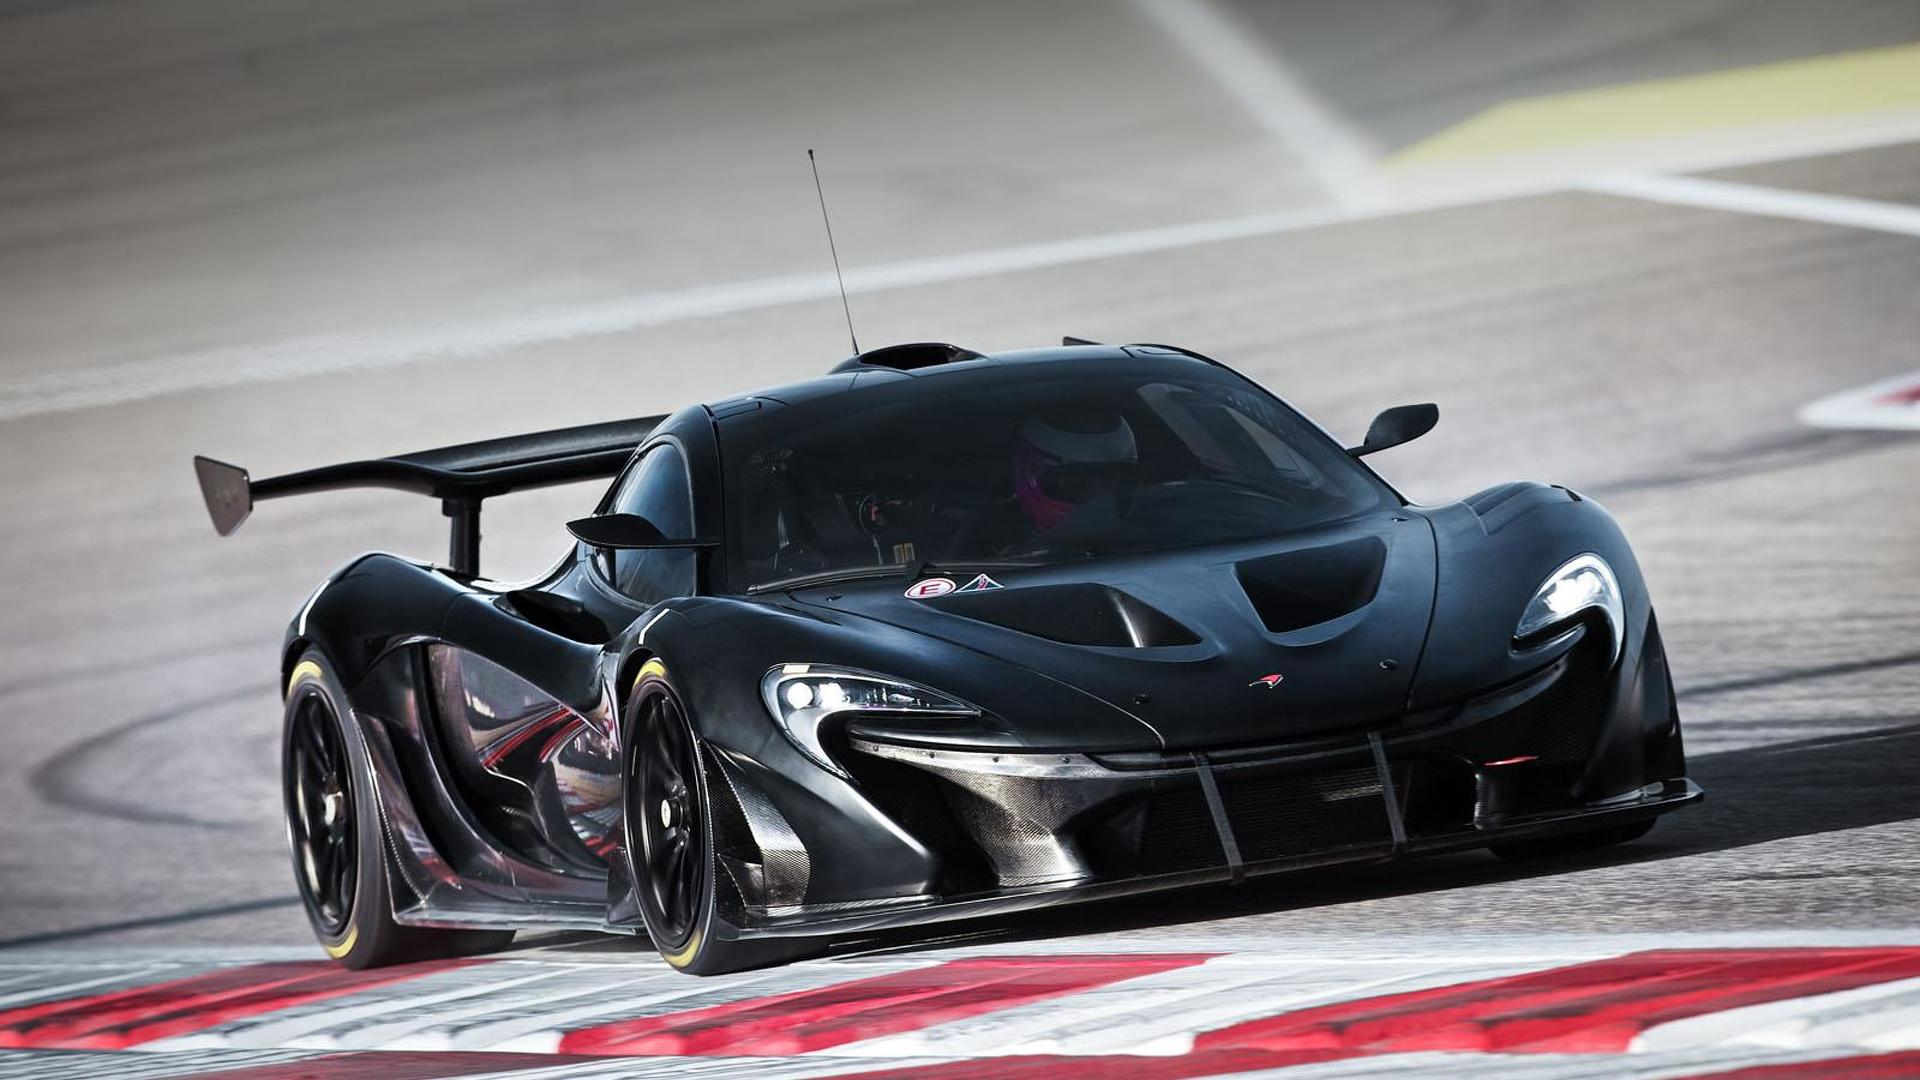 McLaren CEO confirms new hybrid models in the works